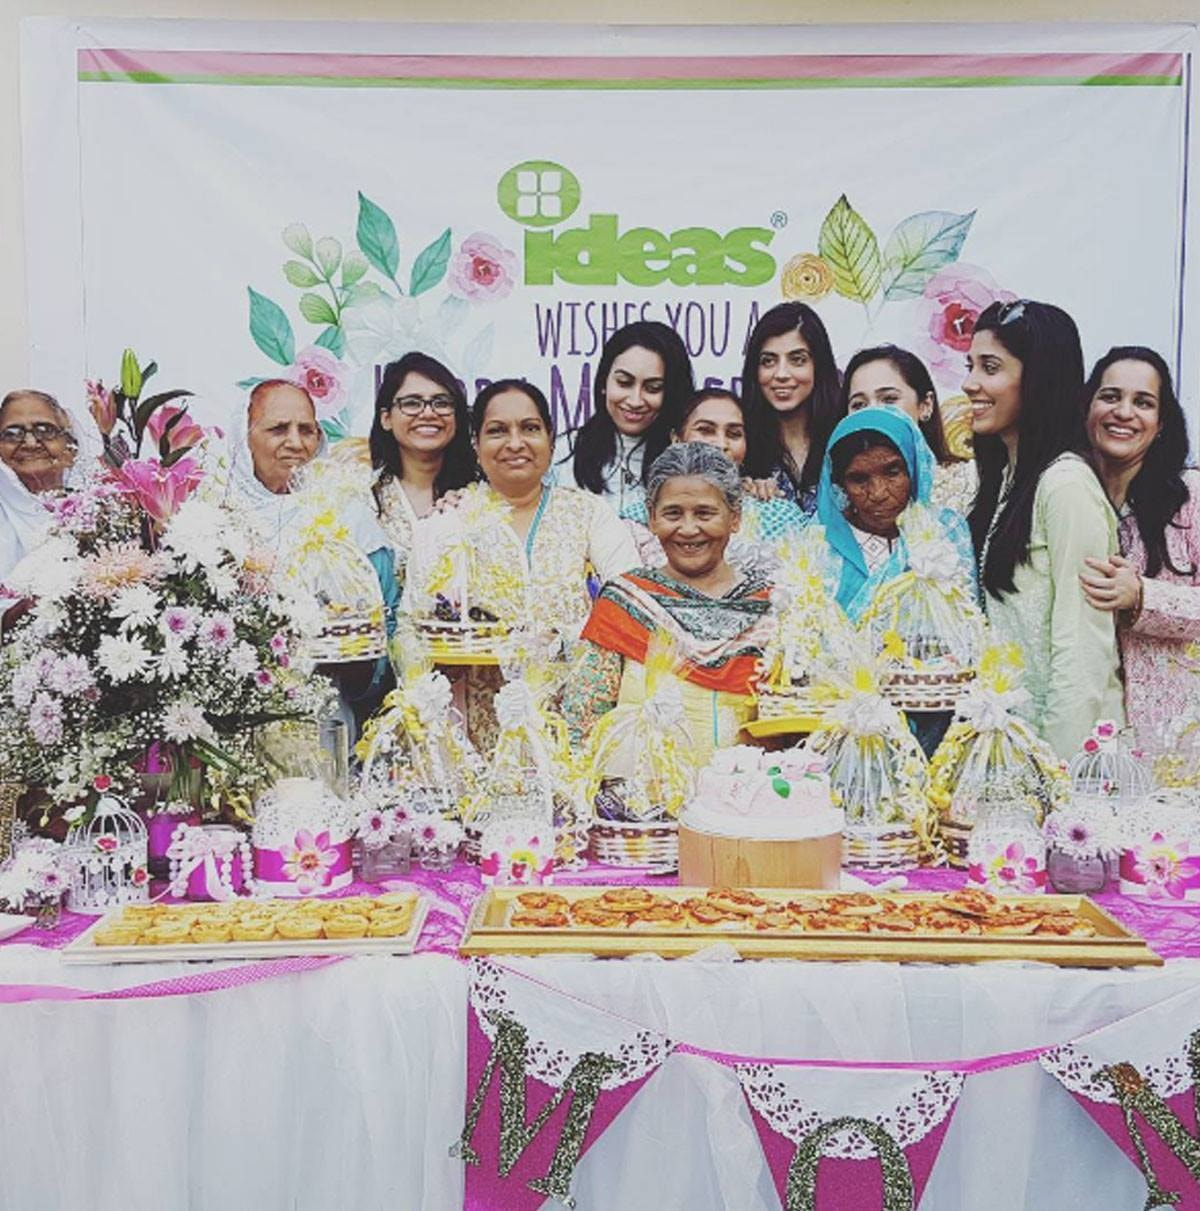 And that's how #ideasteam celebrated Mother's Day with these moms. There is no greater pleasure than putting on smiles on these mother's faces. #ideas #team #mothersdaycelebration #celebratingmomswithideas #ideasforabettertomorrow - Instagram